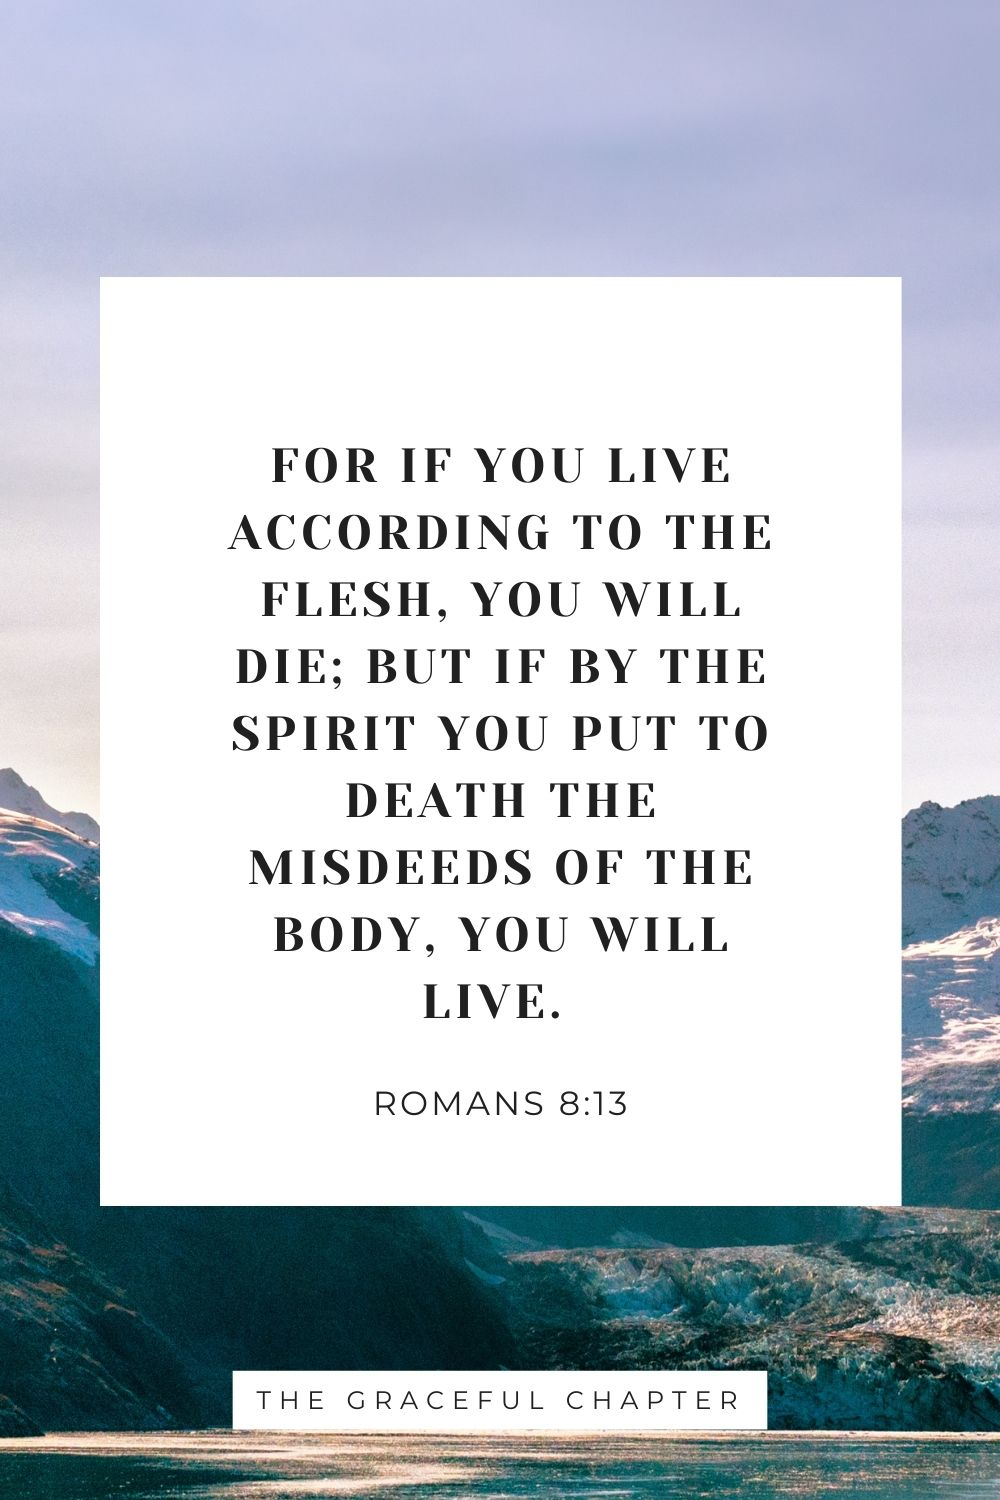 For if you live according to the flesh, you will die; but if by the Spirit you put to death the misdeeds of the body, you will live. Romans 8:13